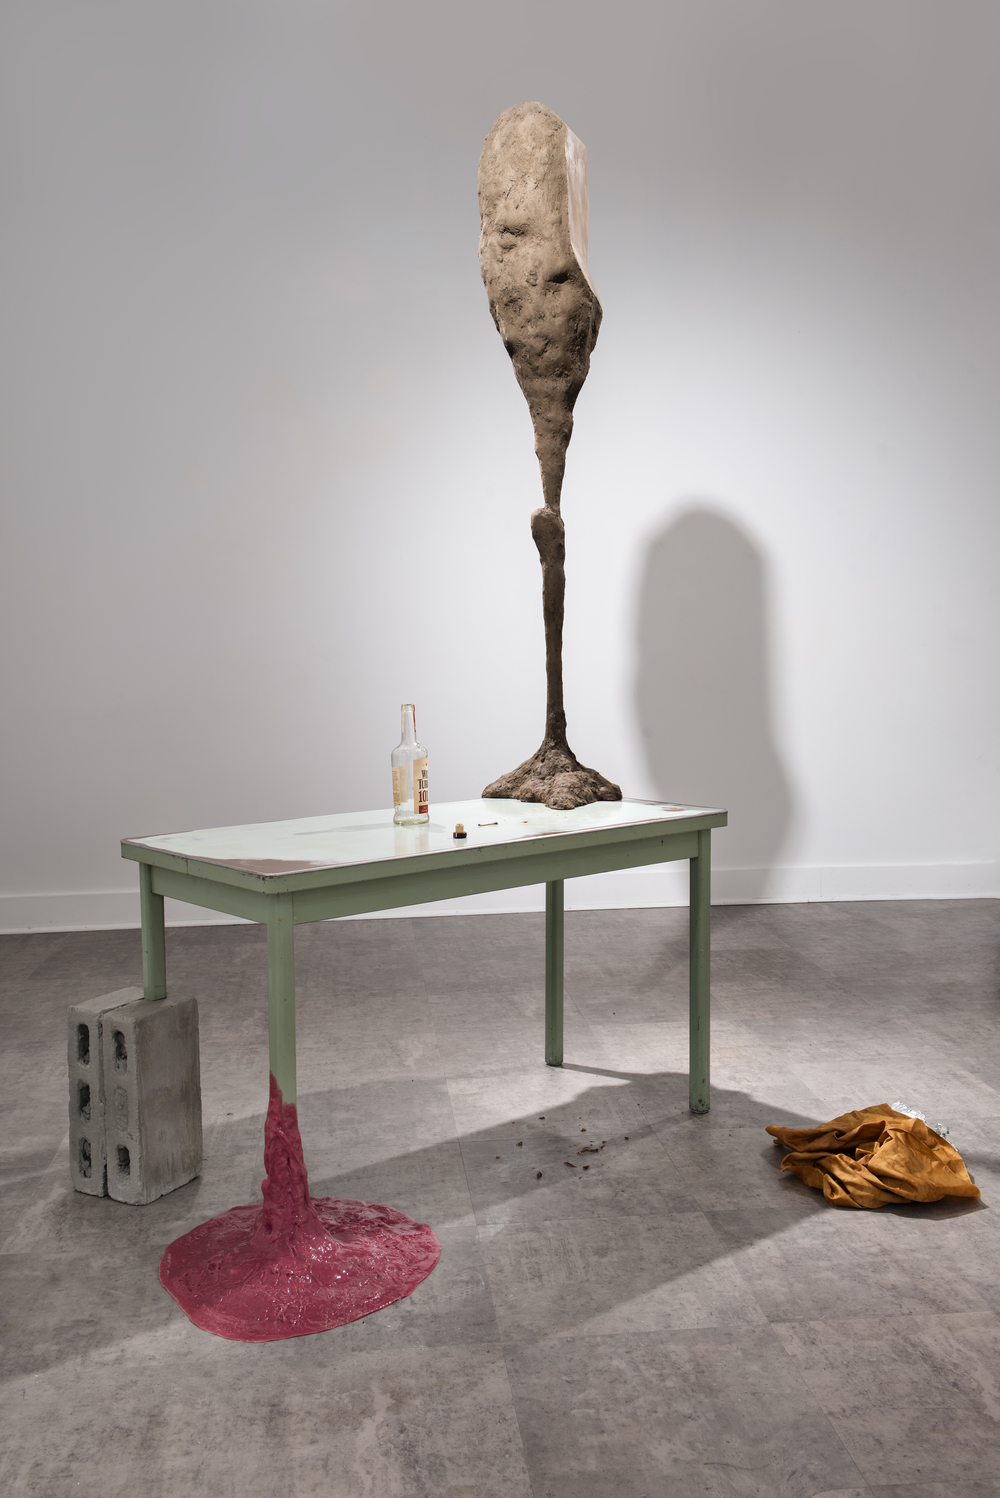 a table to come, 2013